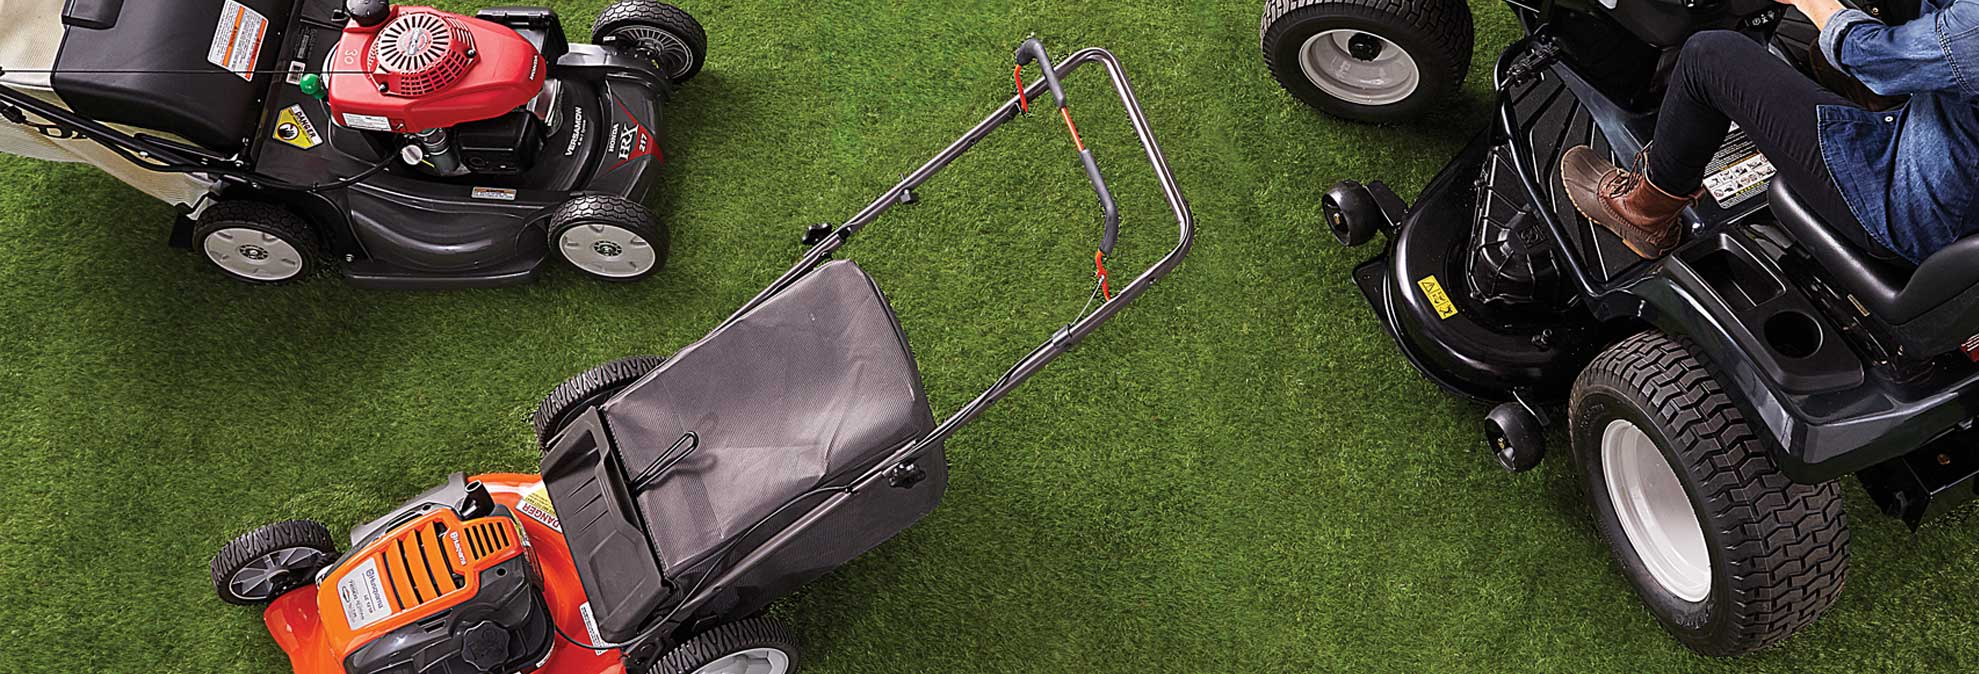 Best Lawn Mower Tractor Buying Guide Consumer Reports Old Craftsman Riding Wiring Diagram